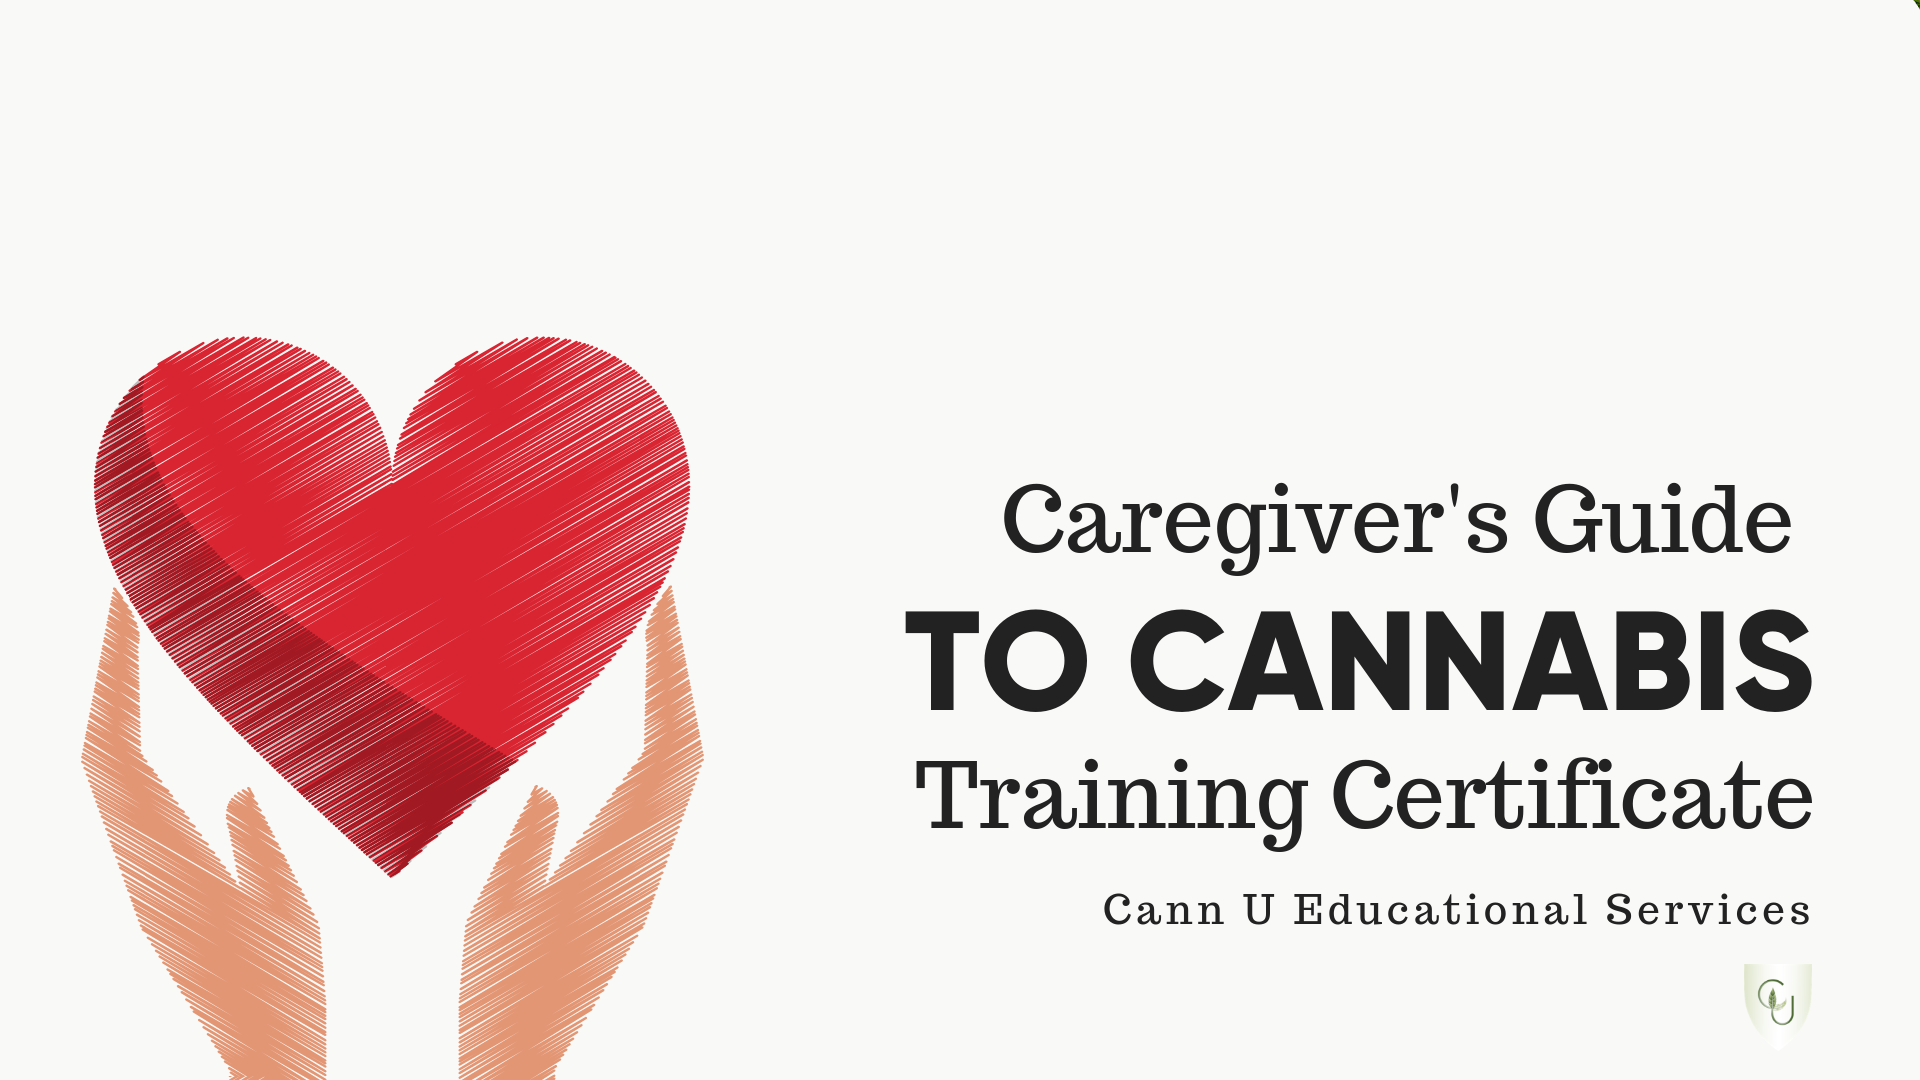 Caregiver's Guide to Cannabis Certificate - $299 CADA thorough exploration of cannabis and the caregiver's role in helping their patients in the safe and effective use of medical cannabis.15 modules and downloadable resources